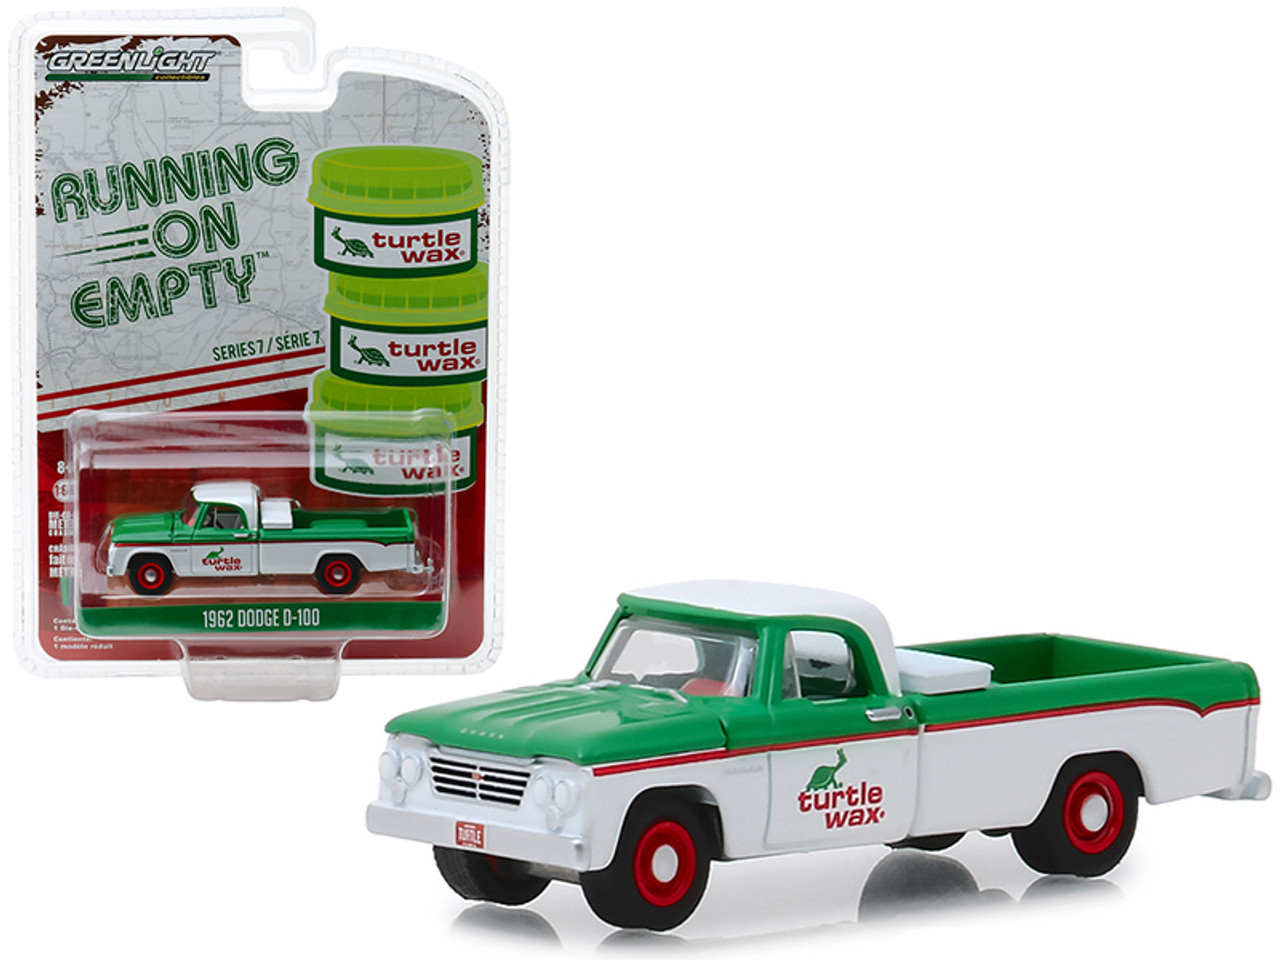 1962 Dodge D 100 Turtle Wax Pickup Truck White And Green Running On Empty Series 7 1 64 Diecast Model Car By Greenlight Livecarmodel Com